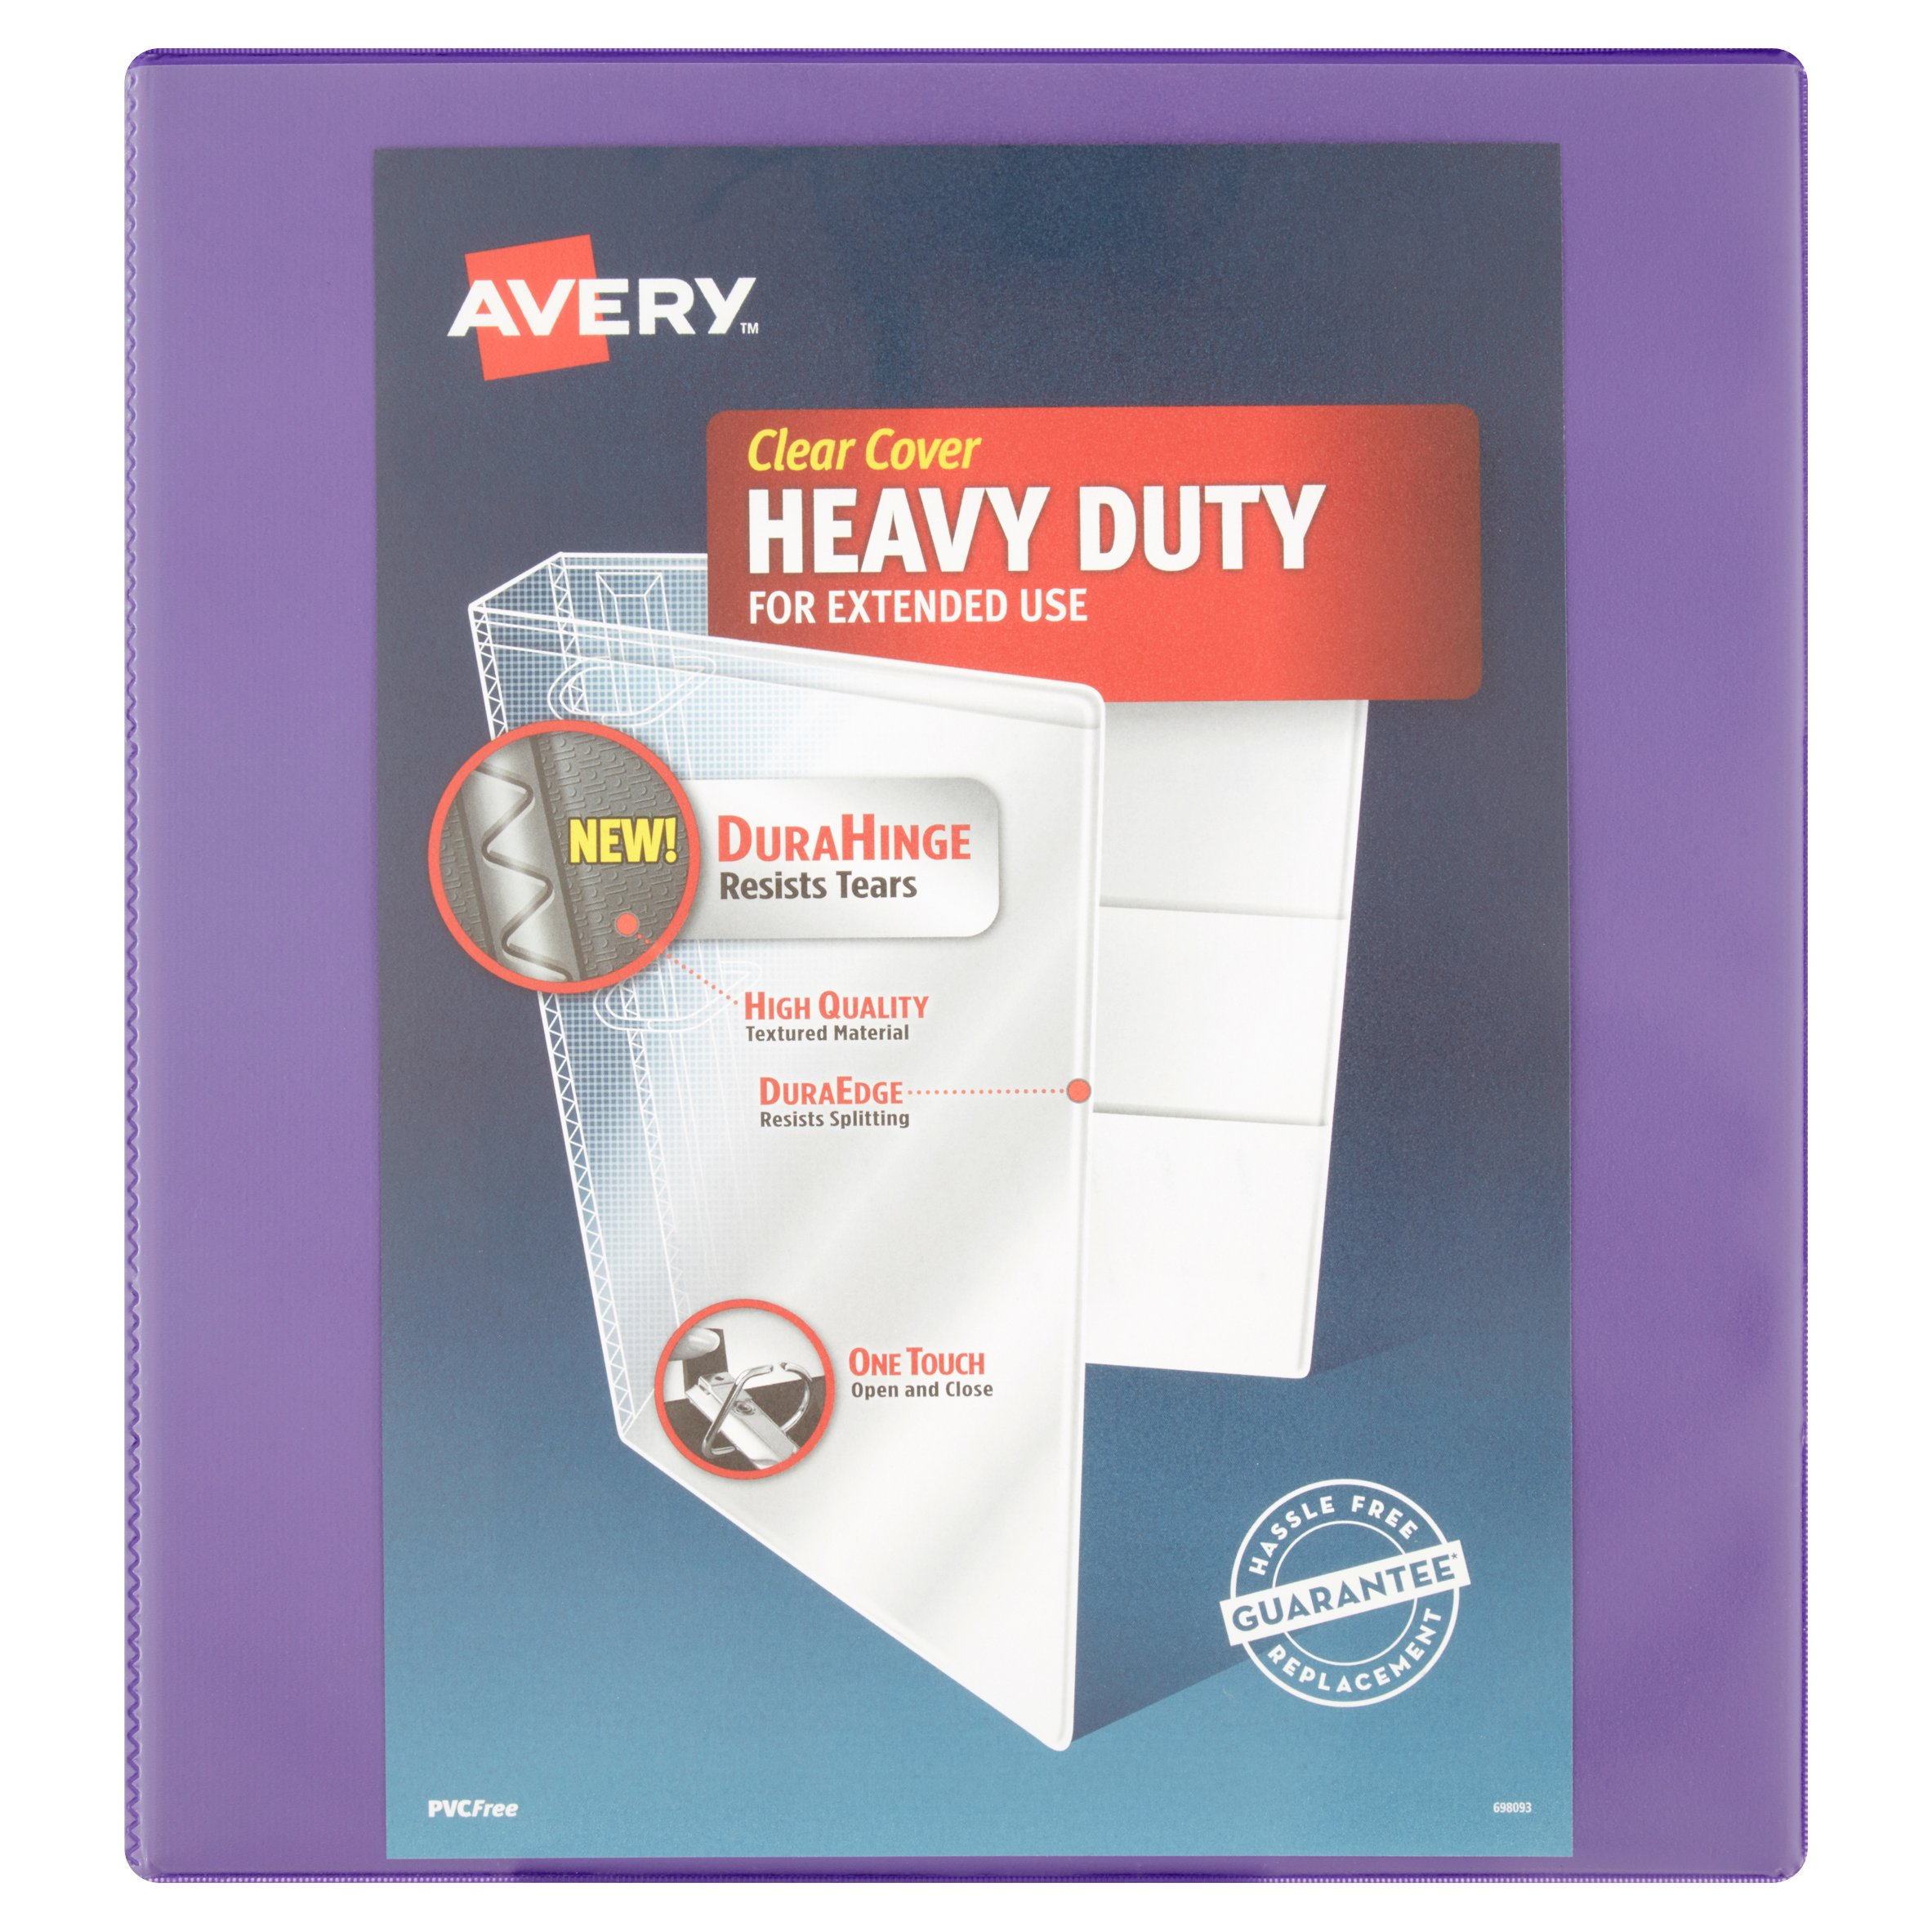 "Avery(R) Heavy-Duty Binder, 1"" One Touch Rings, 250-Sheet Capacity, DuraHinge(TM), Purple, 79241"